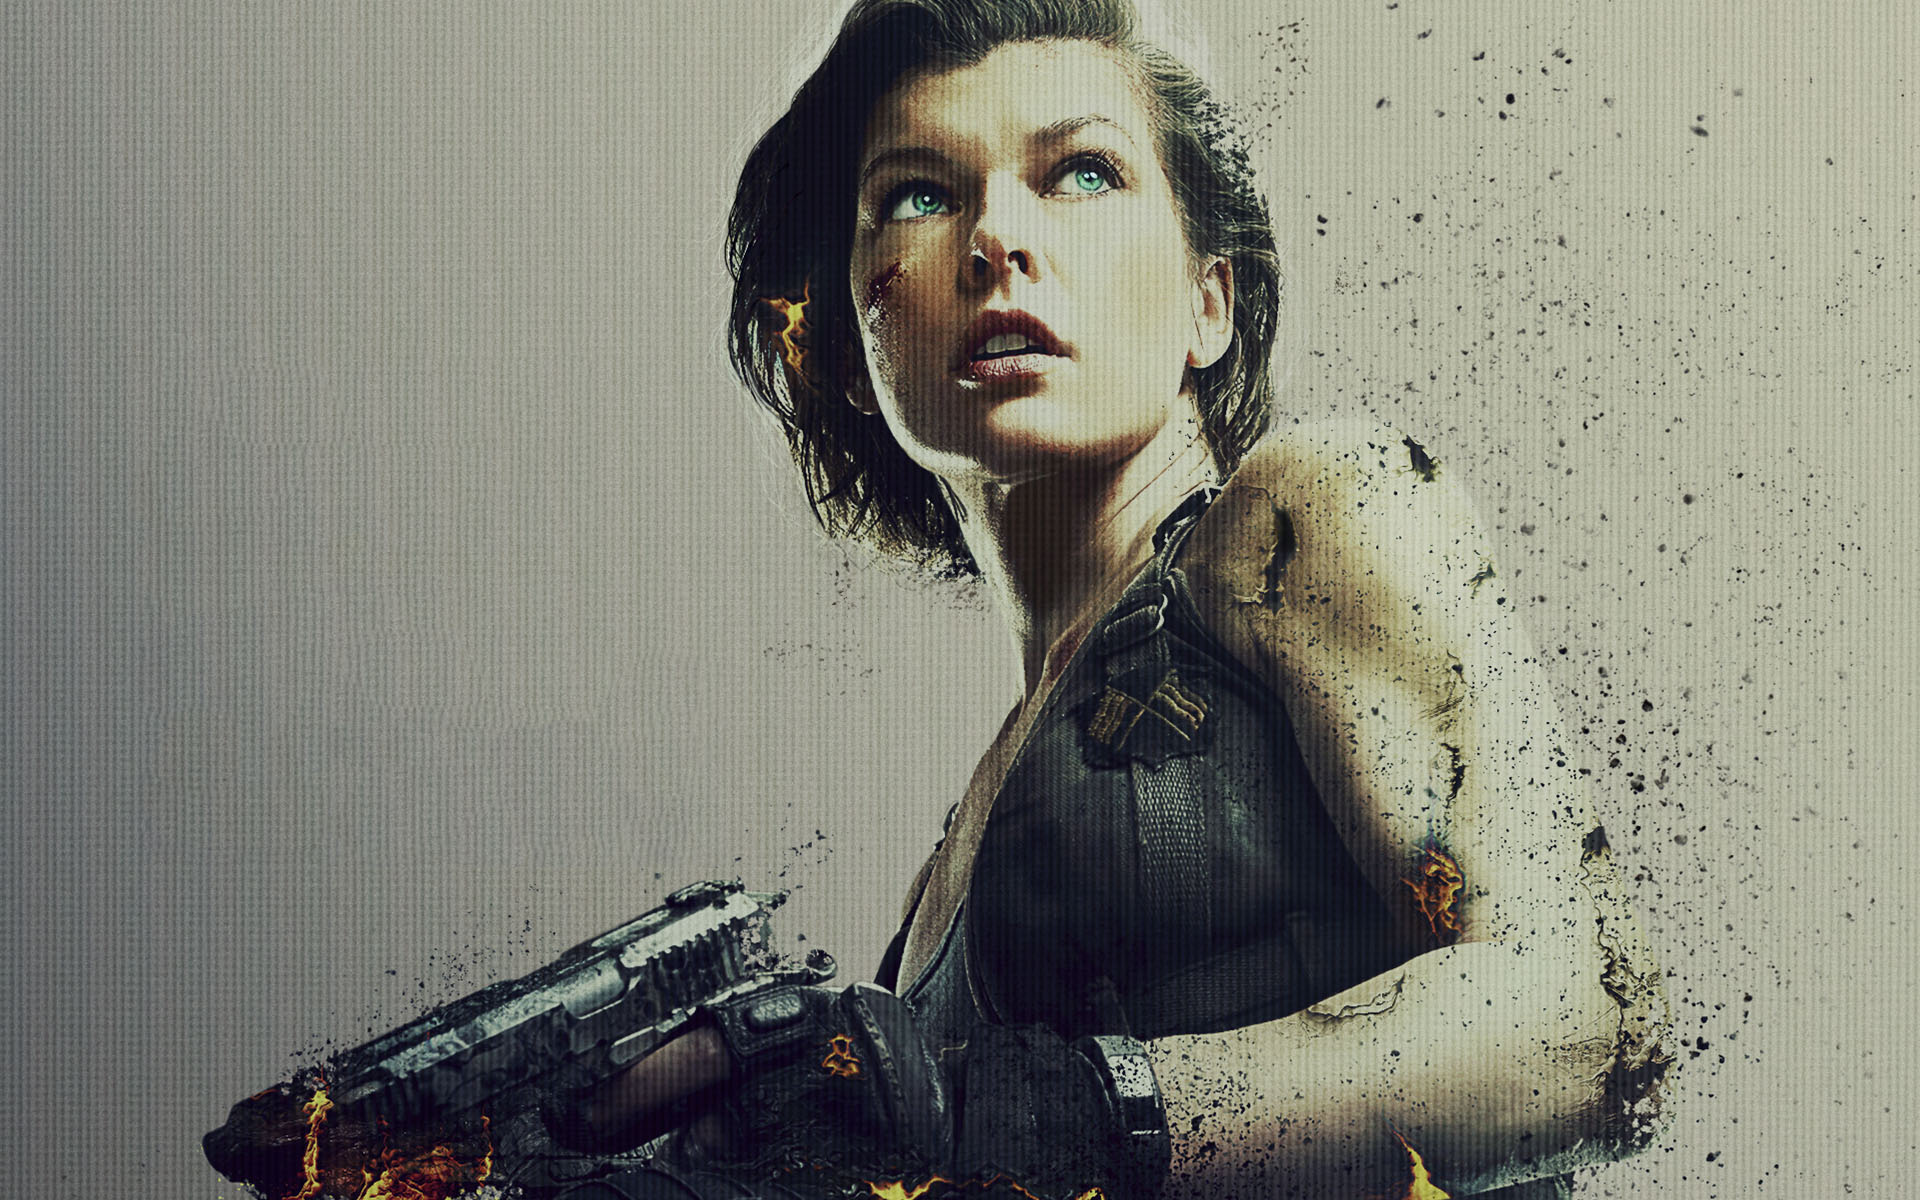 resident_evil_the_final_chapter_poster_2-wide